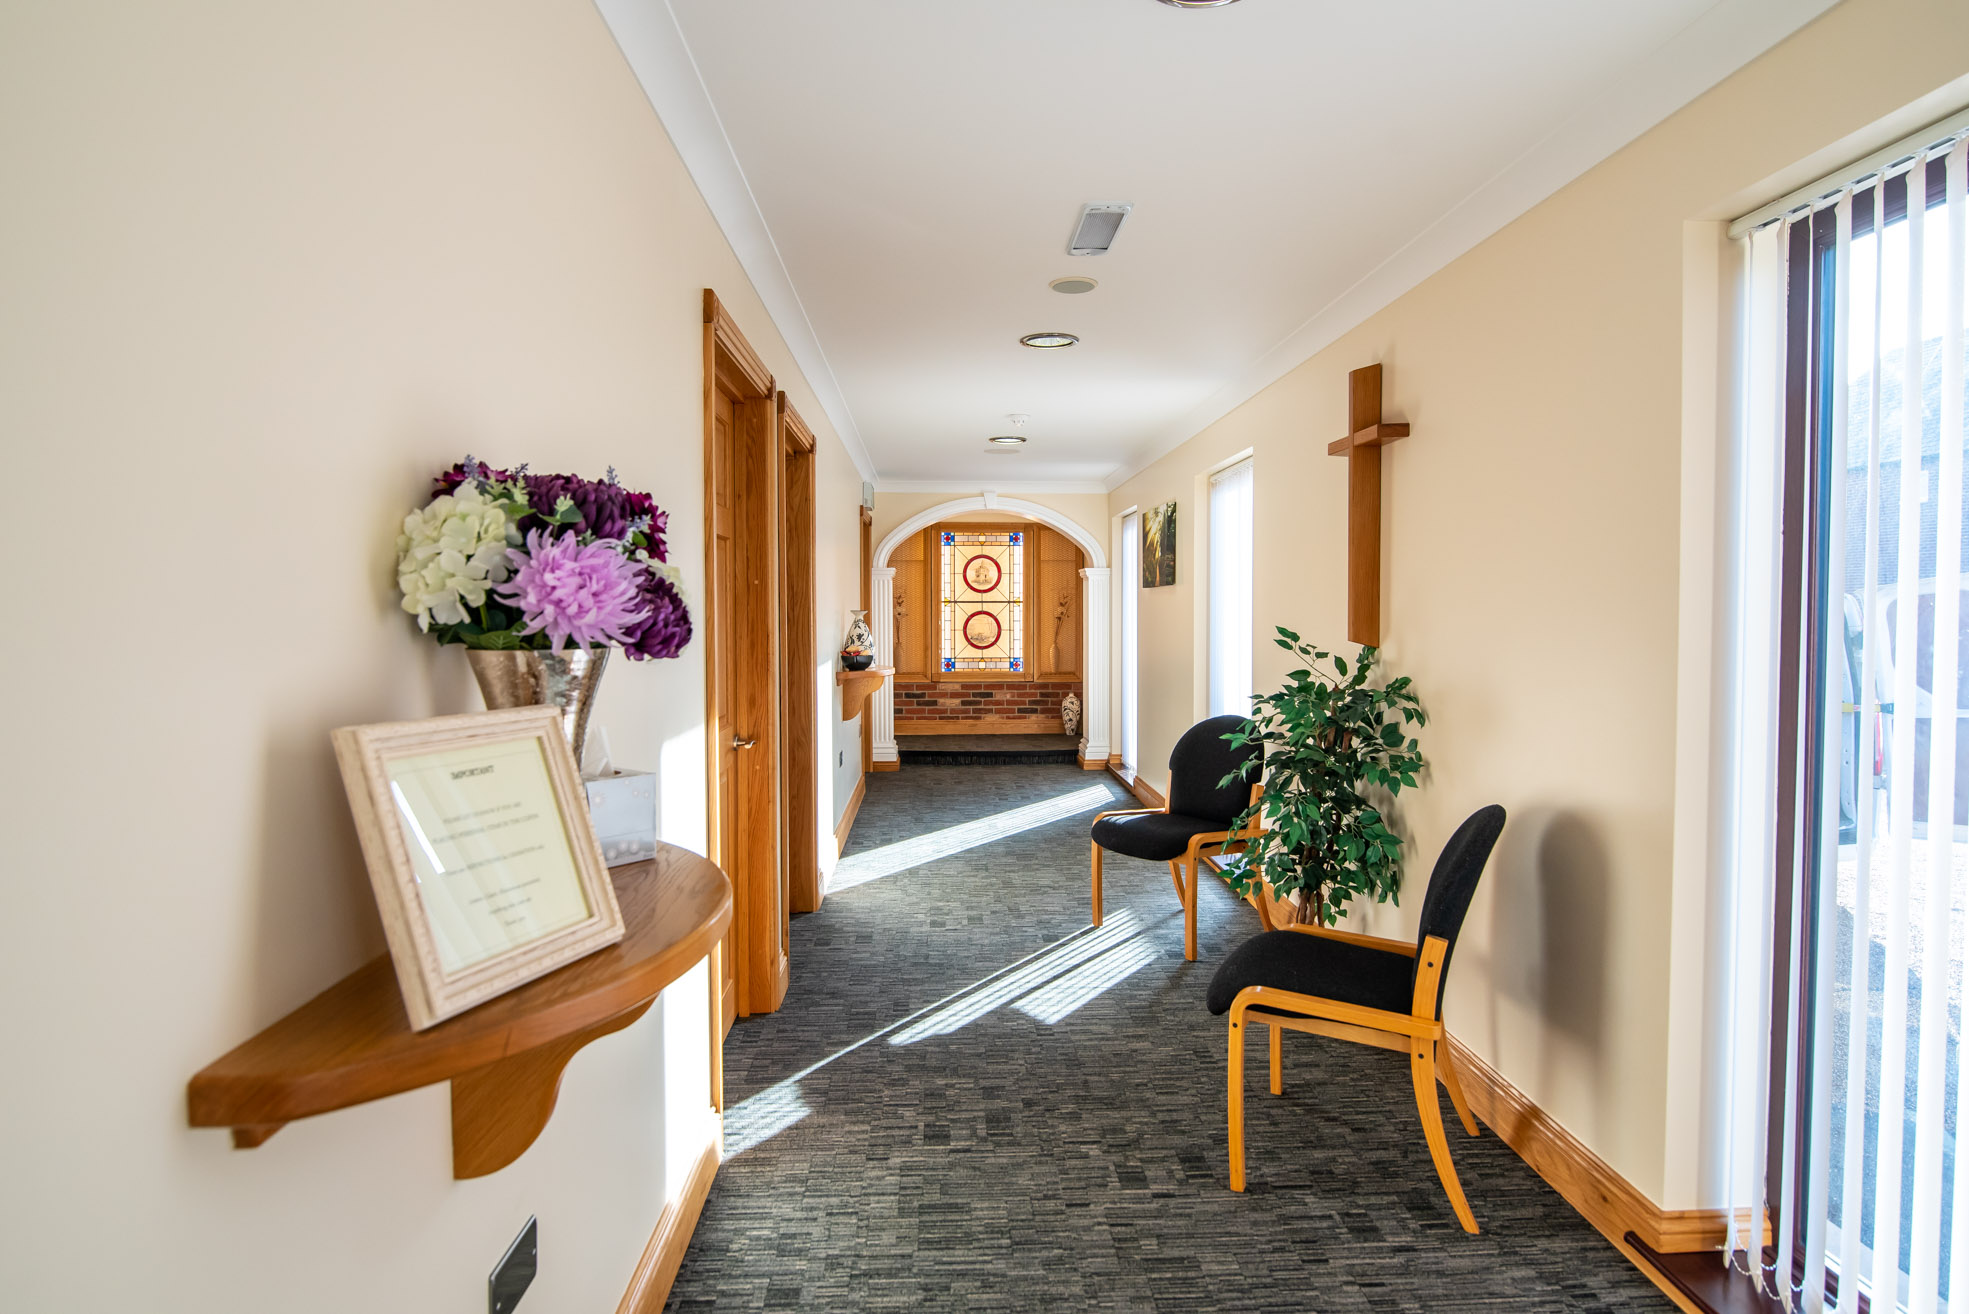 THORNALLEY FUNERAL SERVICES - Independent Local Family Funeral Directors